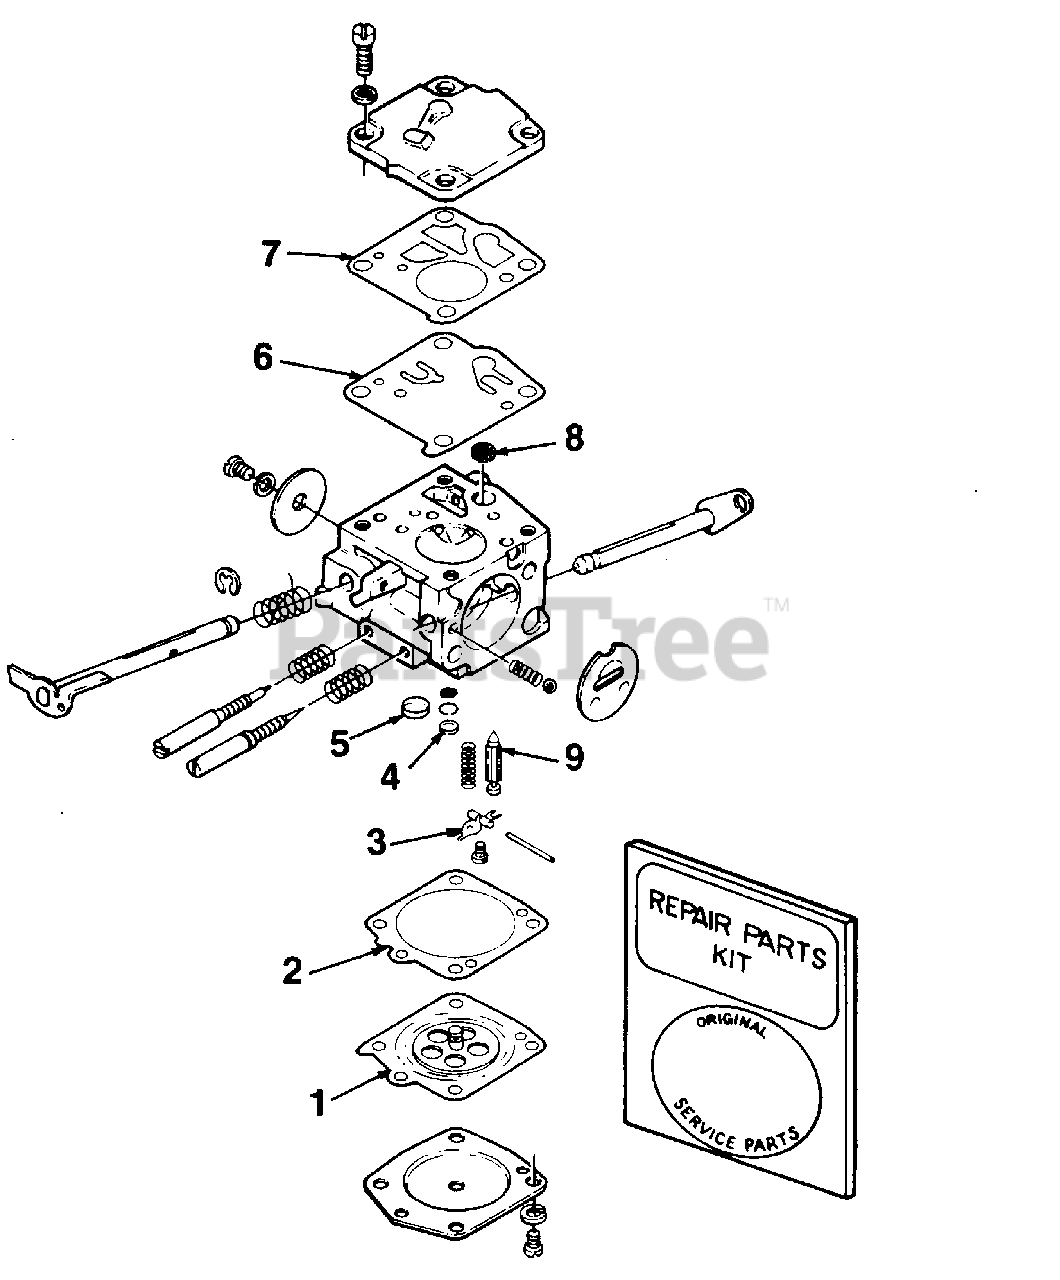 32 Homelite Xl Chainsaw Parts Diagram